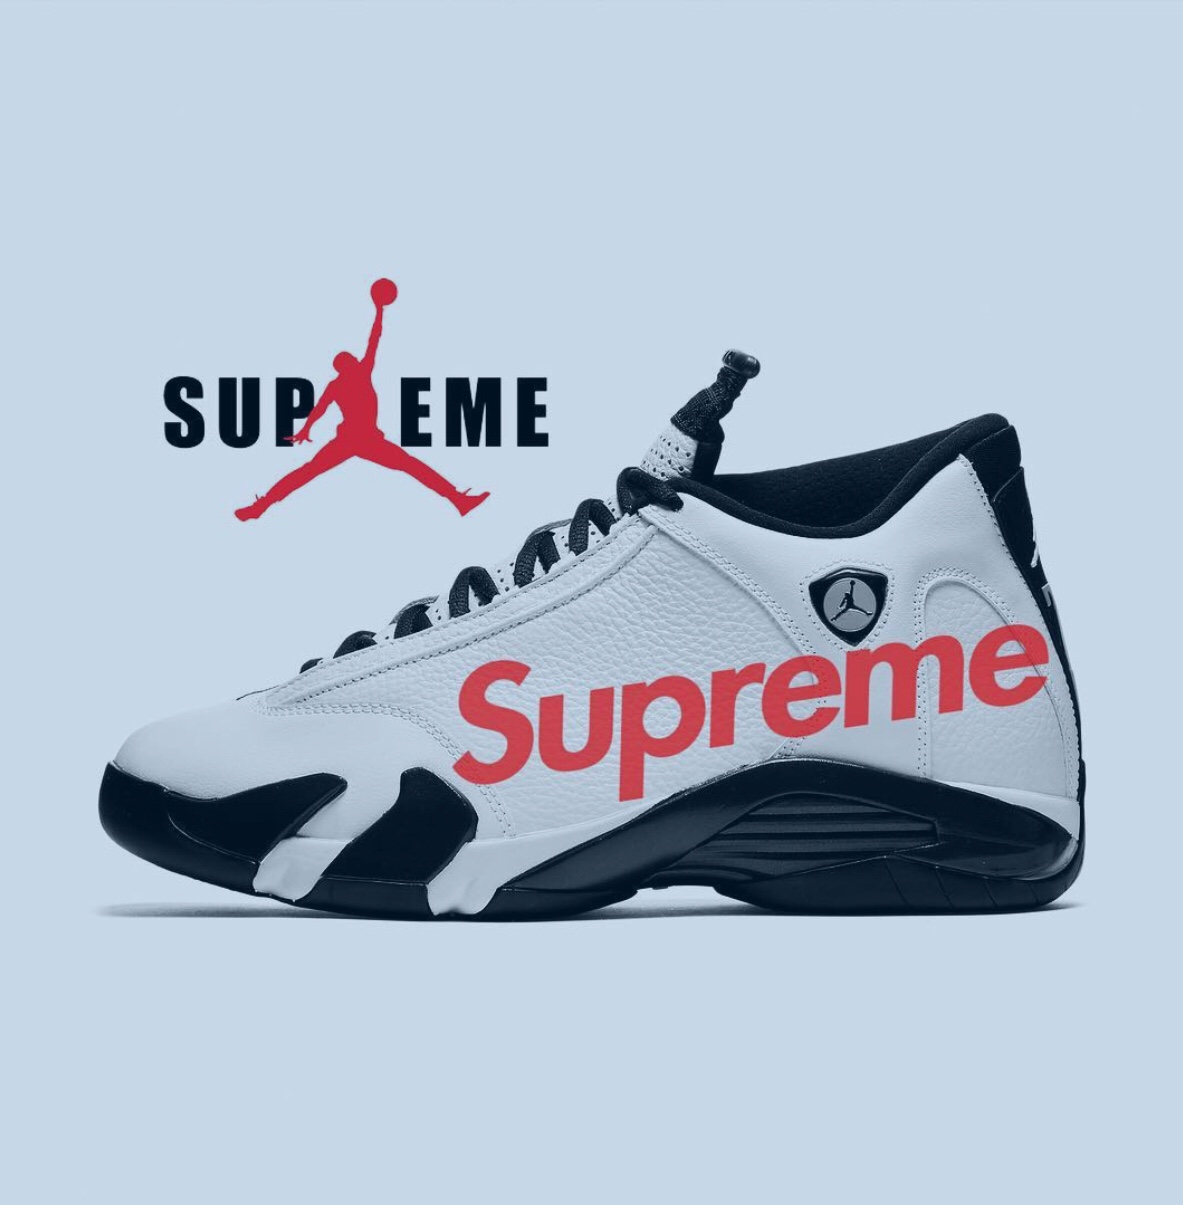 online store ea60a 47bd7 Two Supreme x Air Jordan 14 colorways rumoured to come ...